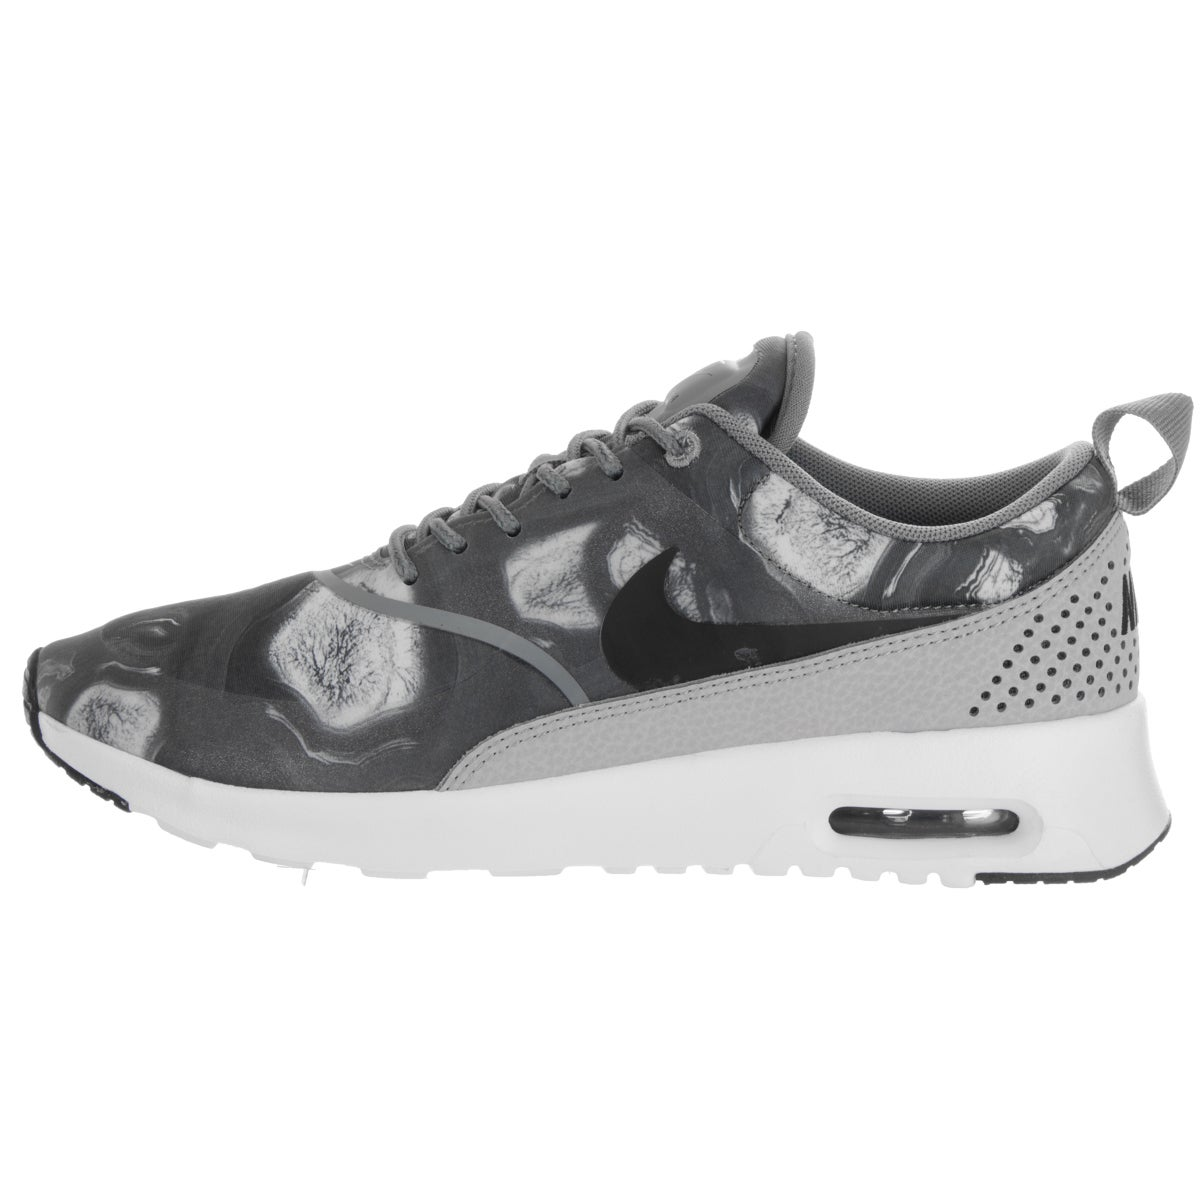 best service bacbf da55b Shop Nike Women s Air Max Thea Print Running Shoe - Free Shipping Today -  Overstock.com - 13476313